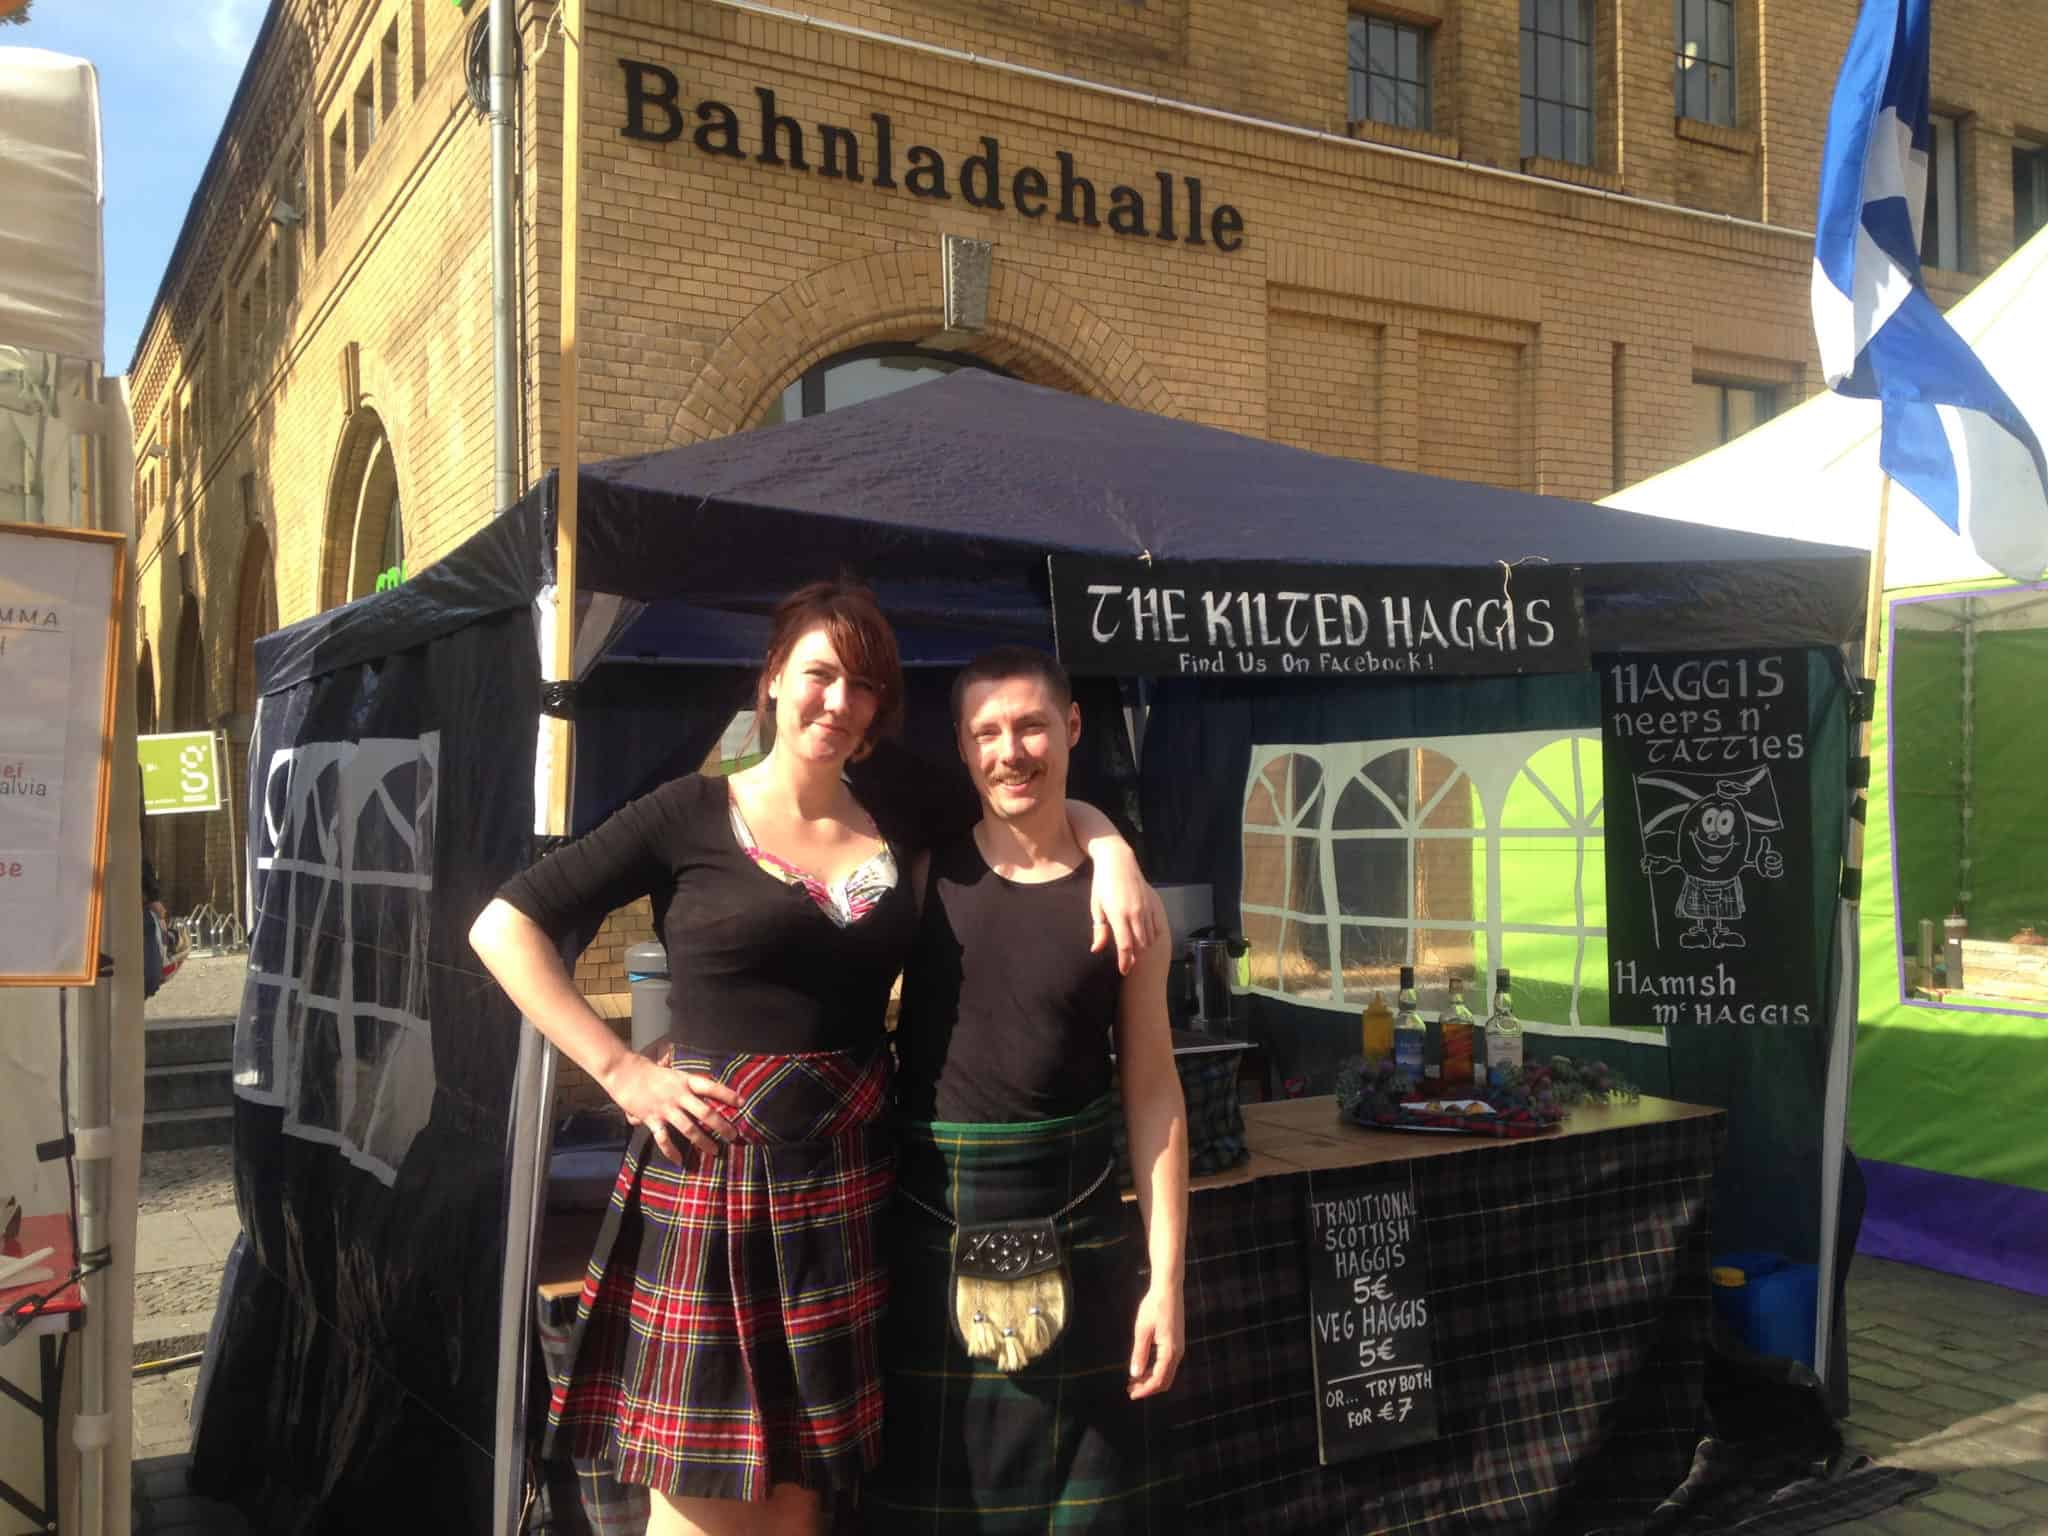 BERLIN LOVES YOU The Kilted Haggis 4